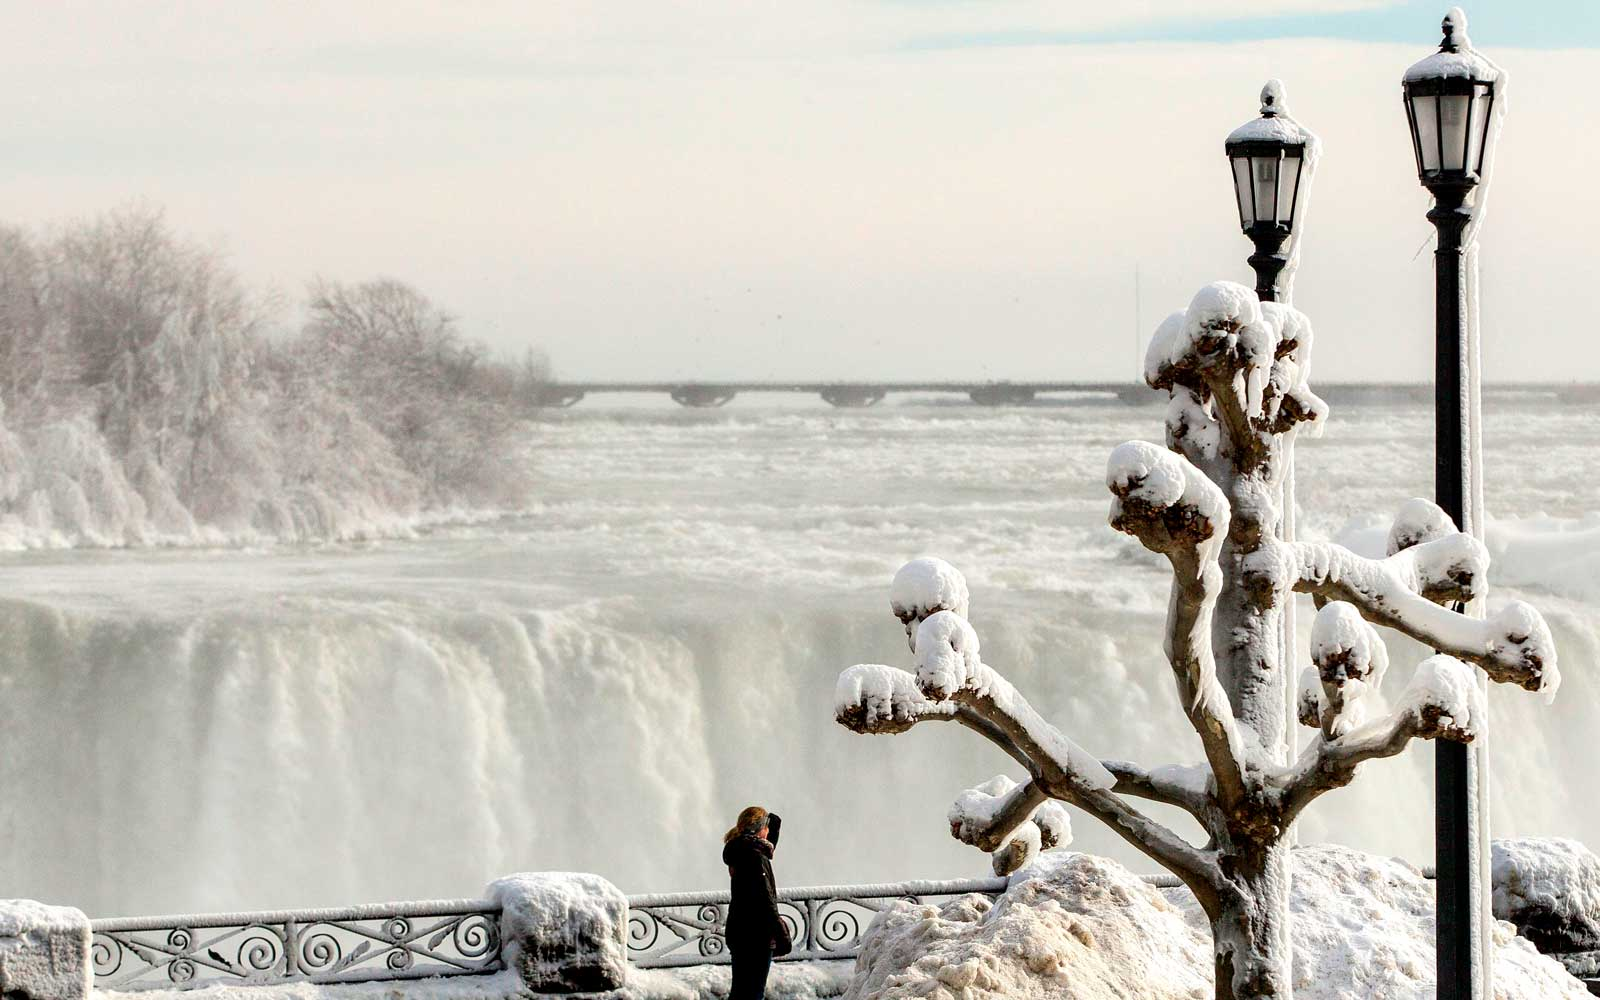 Tourists look out past the frozen railings at the Horseshoe Falls in Niagara Falls, Ontario on January 3, 2018.